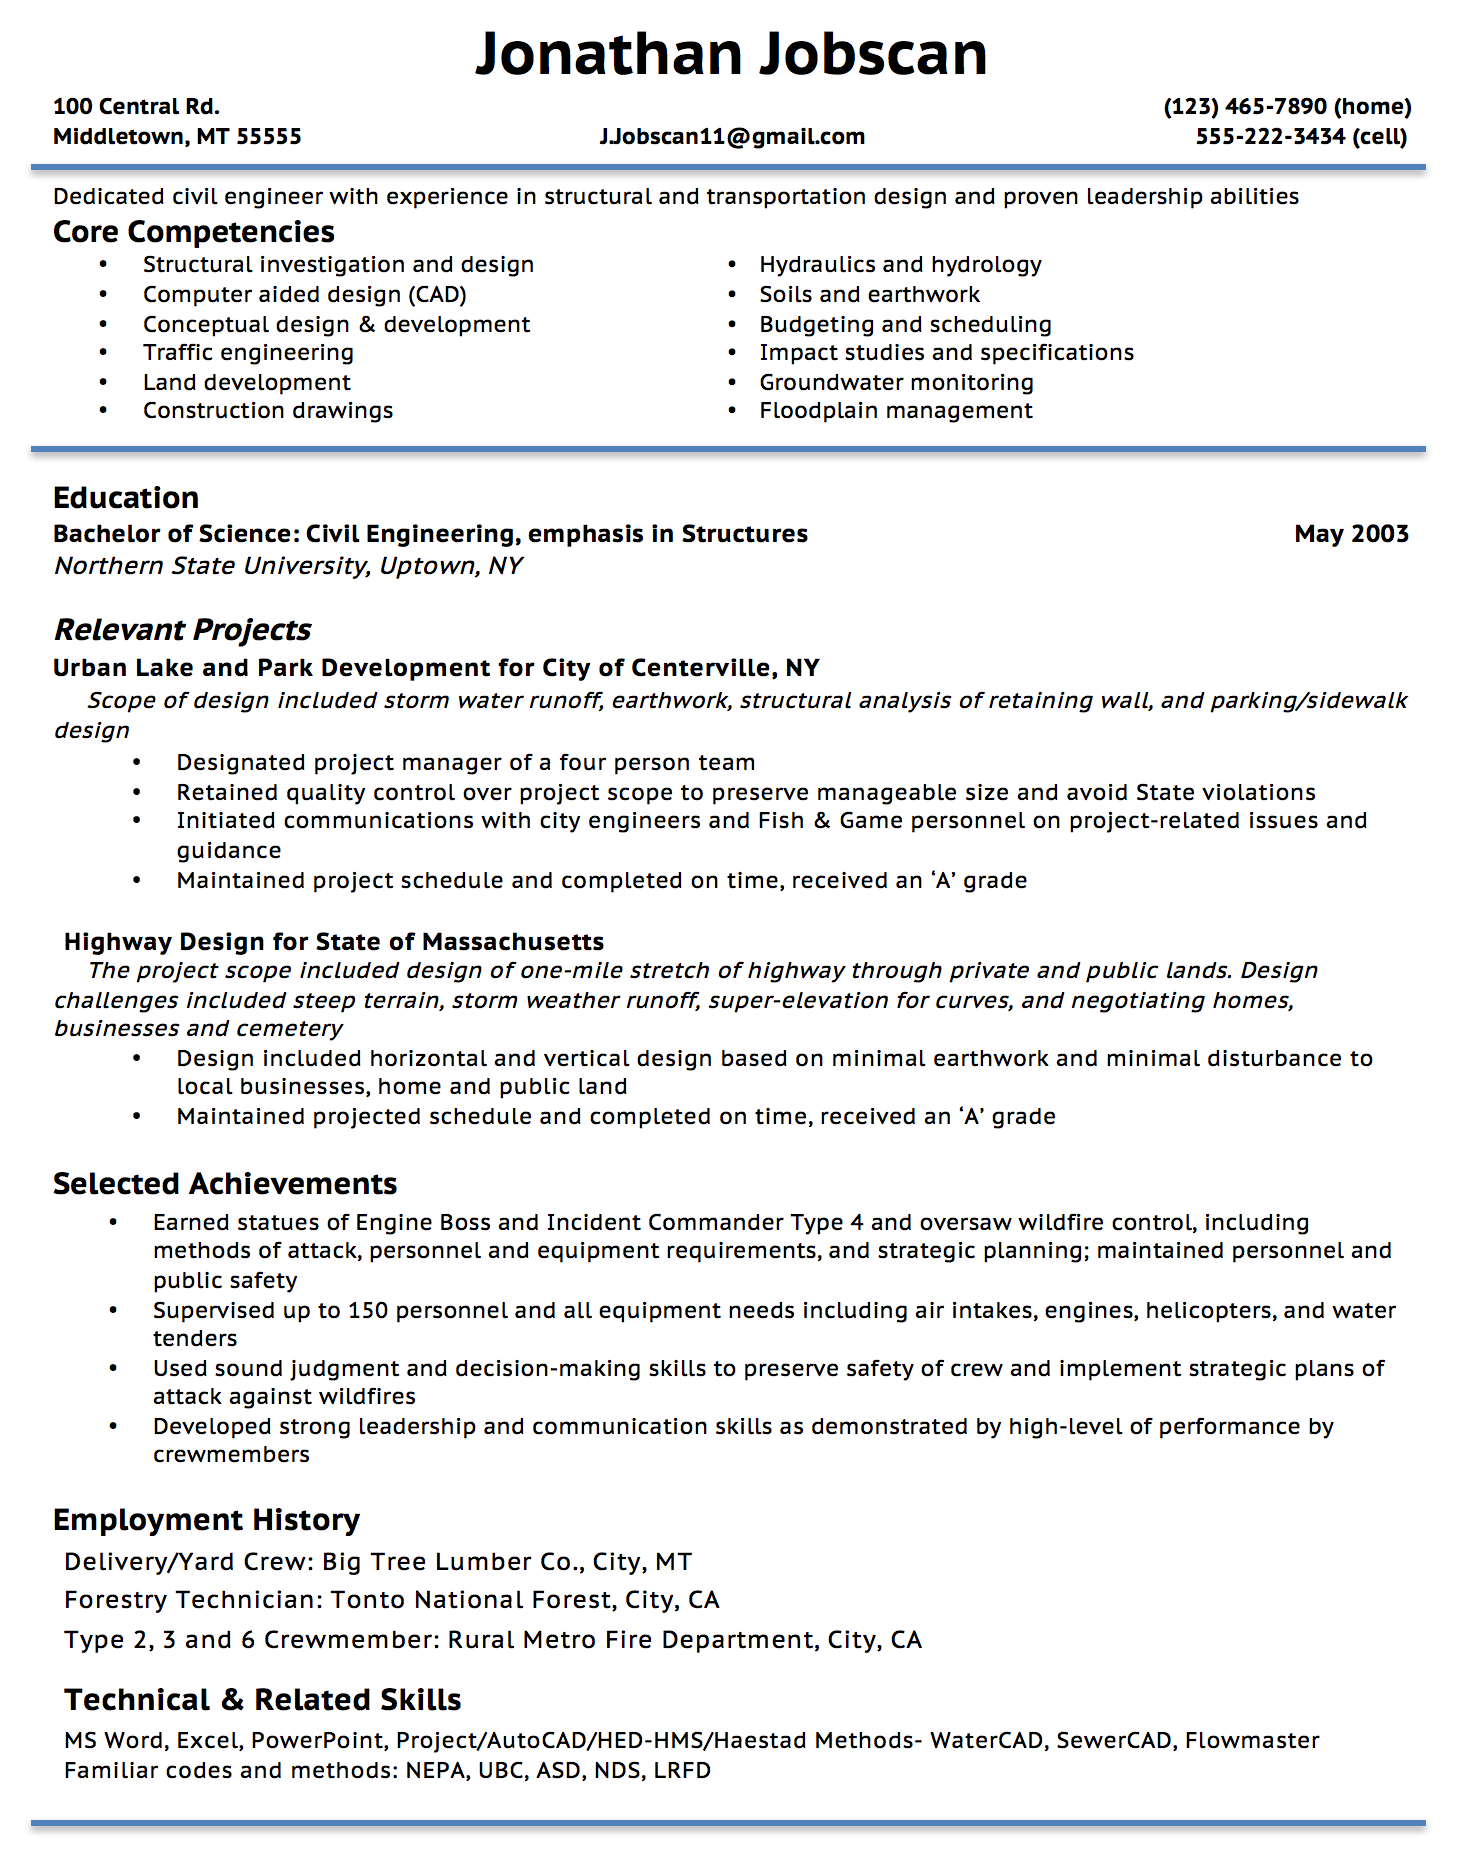 Opposenewapstandardsus  Gorgeous Resume Writing Guide  Jobscan With Engaging Example Of A Functional Resume Format With Lovely Ui Designer Resume Also Resume Manager In Addition Resume Image And Resume Two Pages As Well As How To Write Resumes Additionally Speech Language Pathologist Resume From Jobscanco With Opposenewapstandardsus  Engaging Resume Writing Guide  Jobscan With Lovely Example Of A Functional Resume Format And Gorgeous Ui Designer Resume Also Resume Manager In Addition Resume Image From Jobscanco